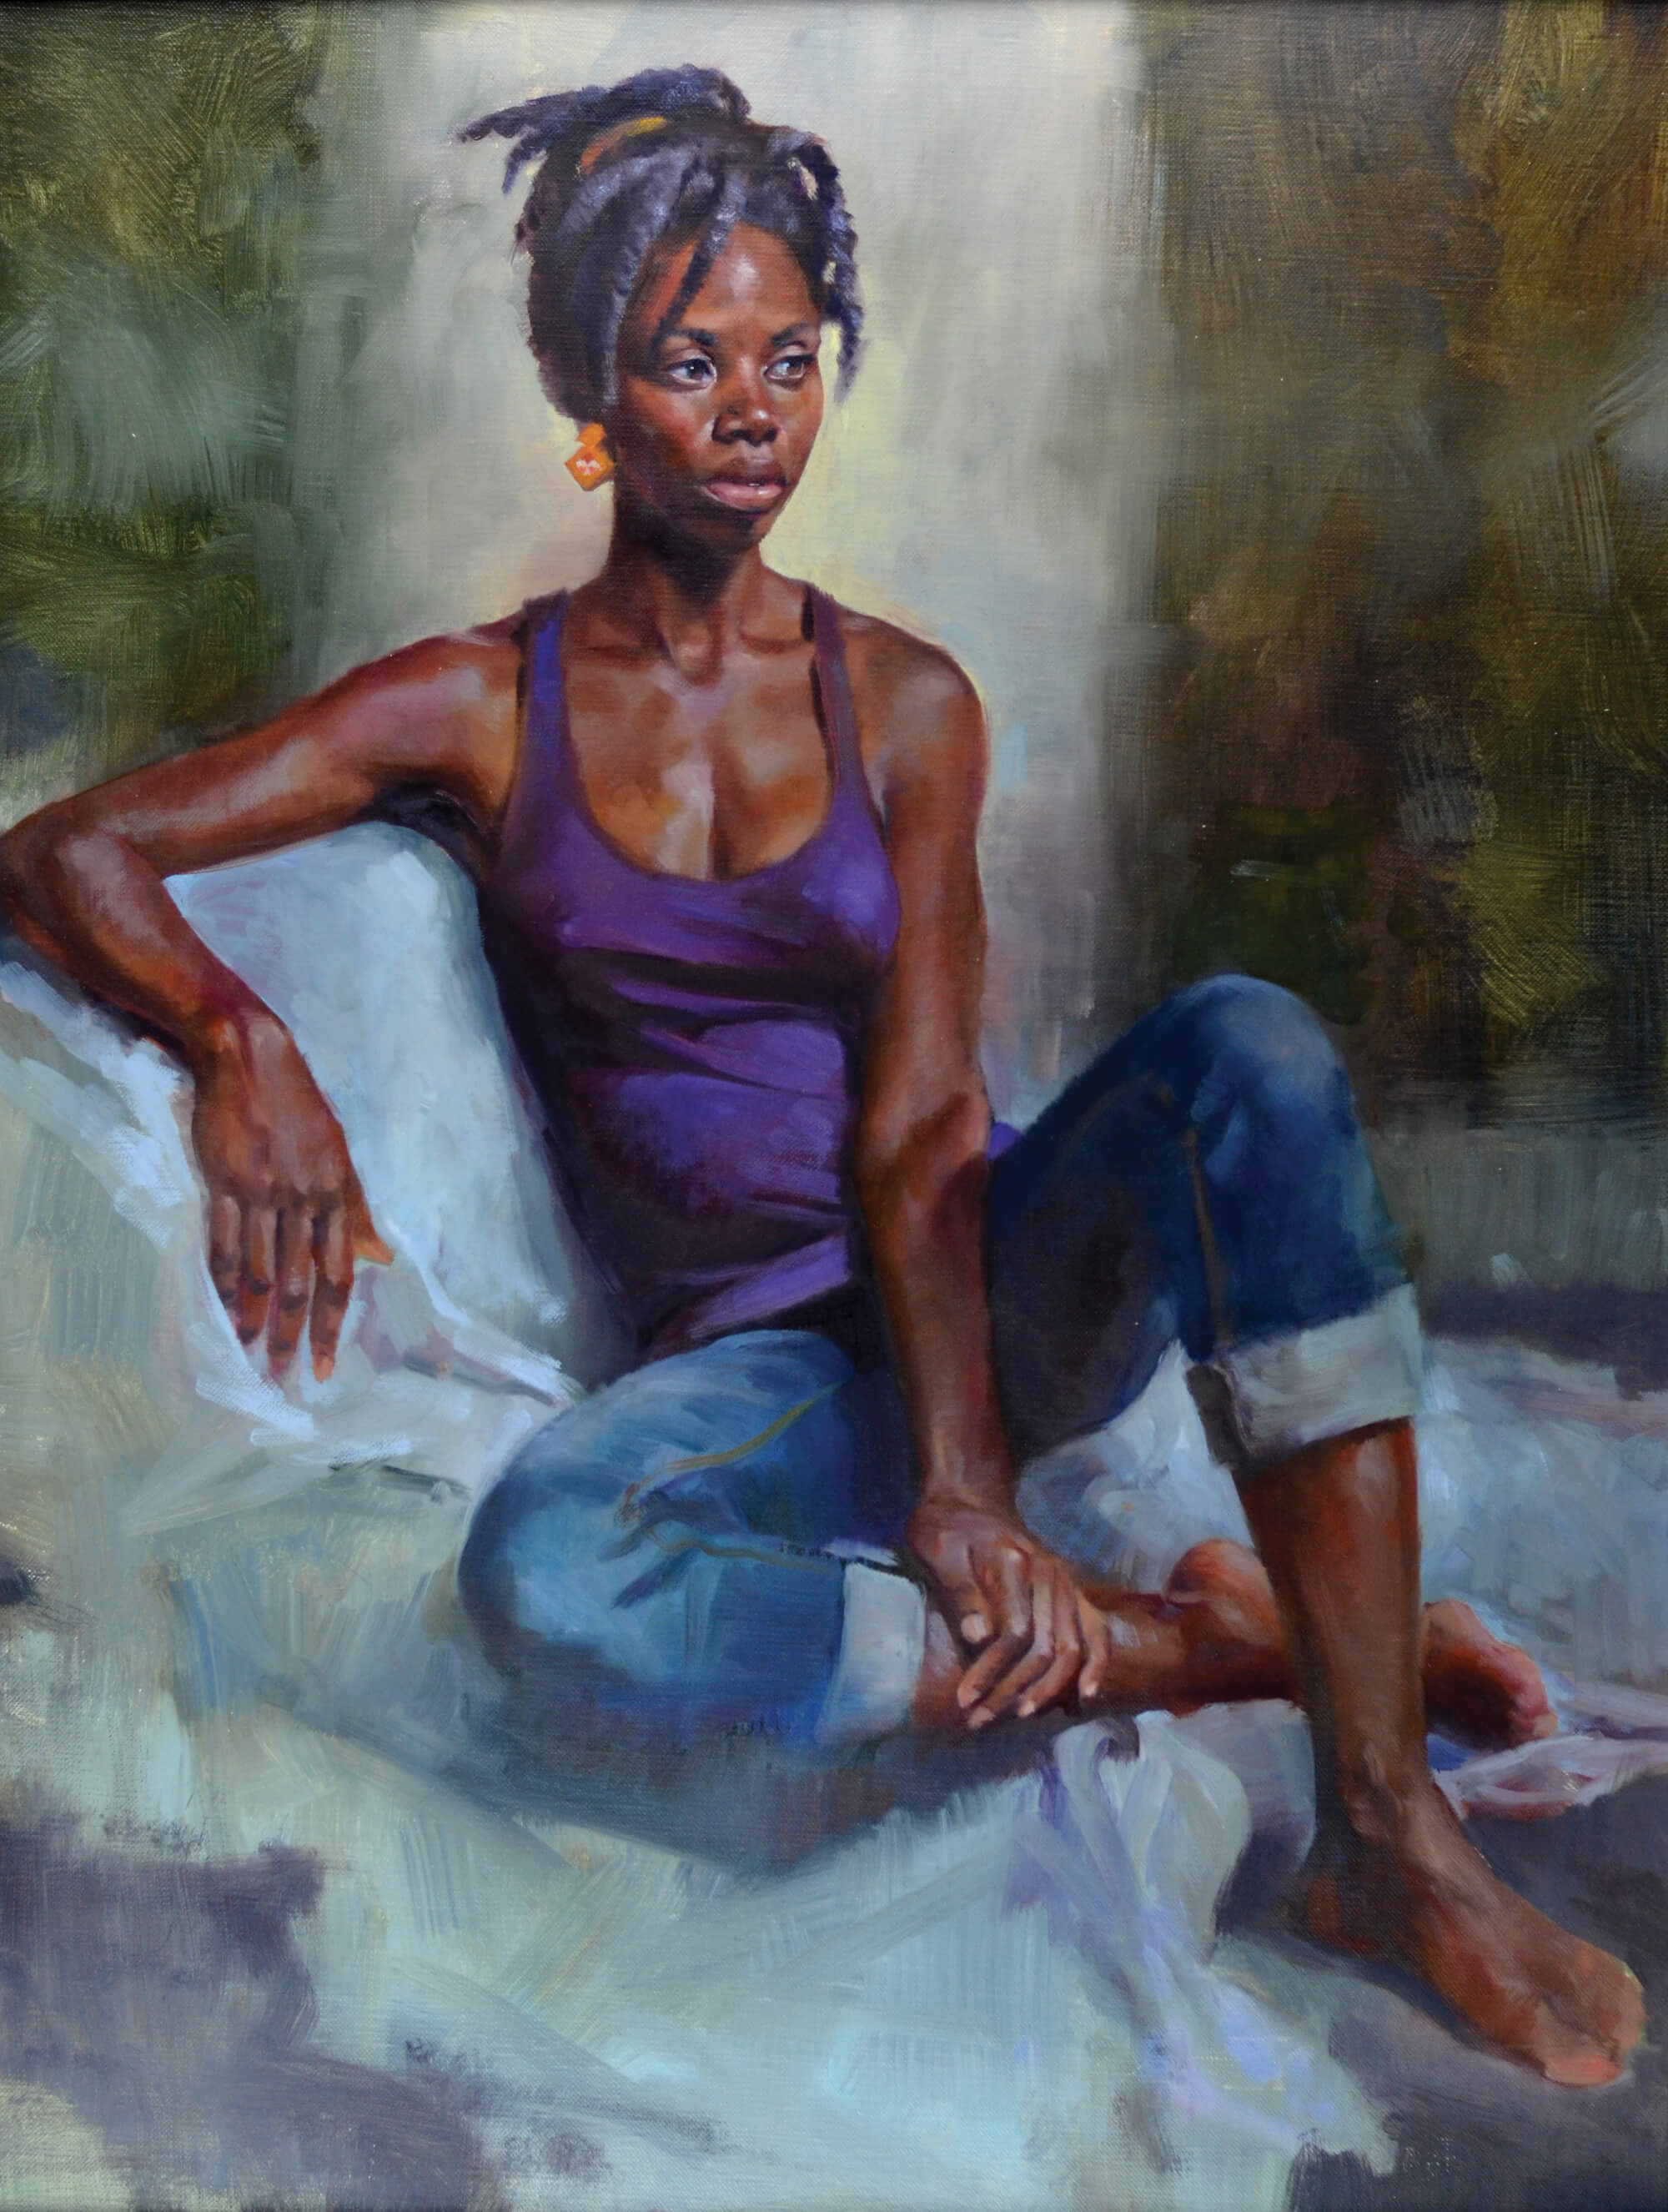 Figurative oil portrait of a young woman wearing a purple tank top and jeans.